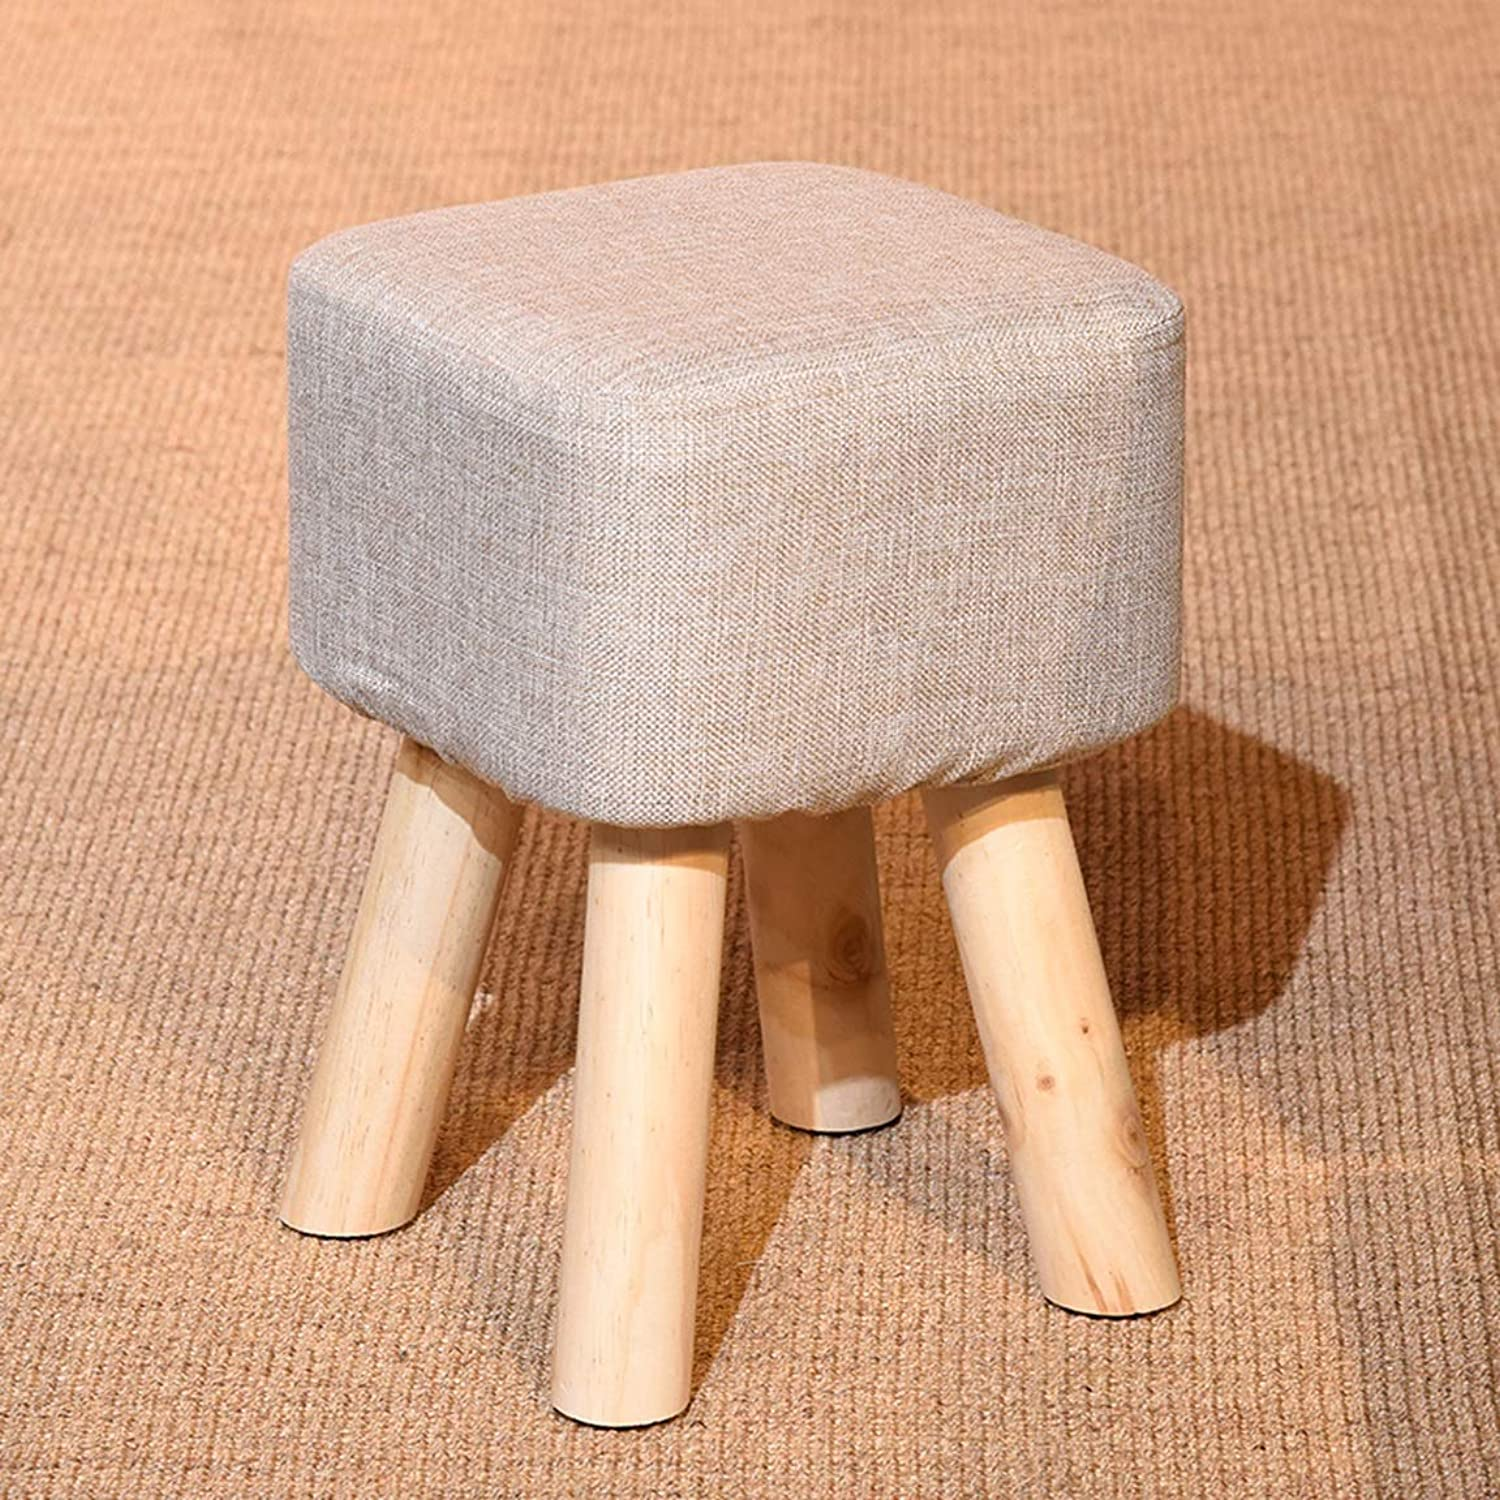 HZB Small Stool Solid Wood Household Creative Fashion Living Room for shoes Stools Fashion Dresser Stools Sofa Stools Bench (color   Grey)